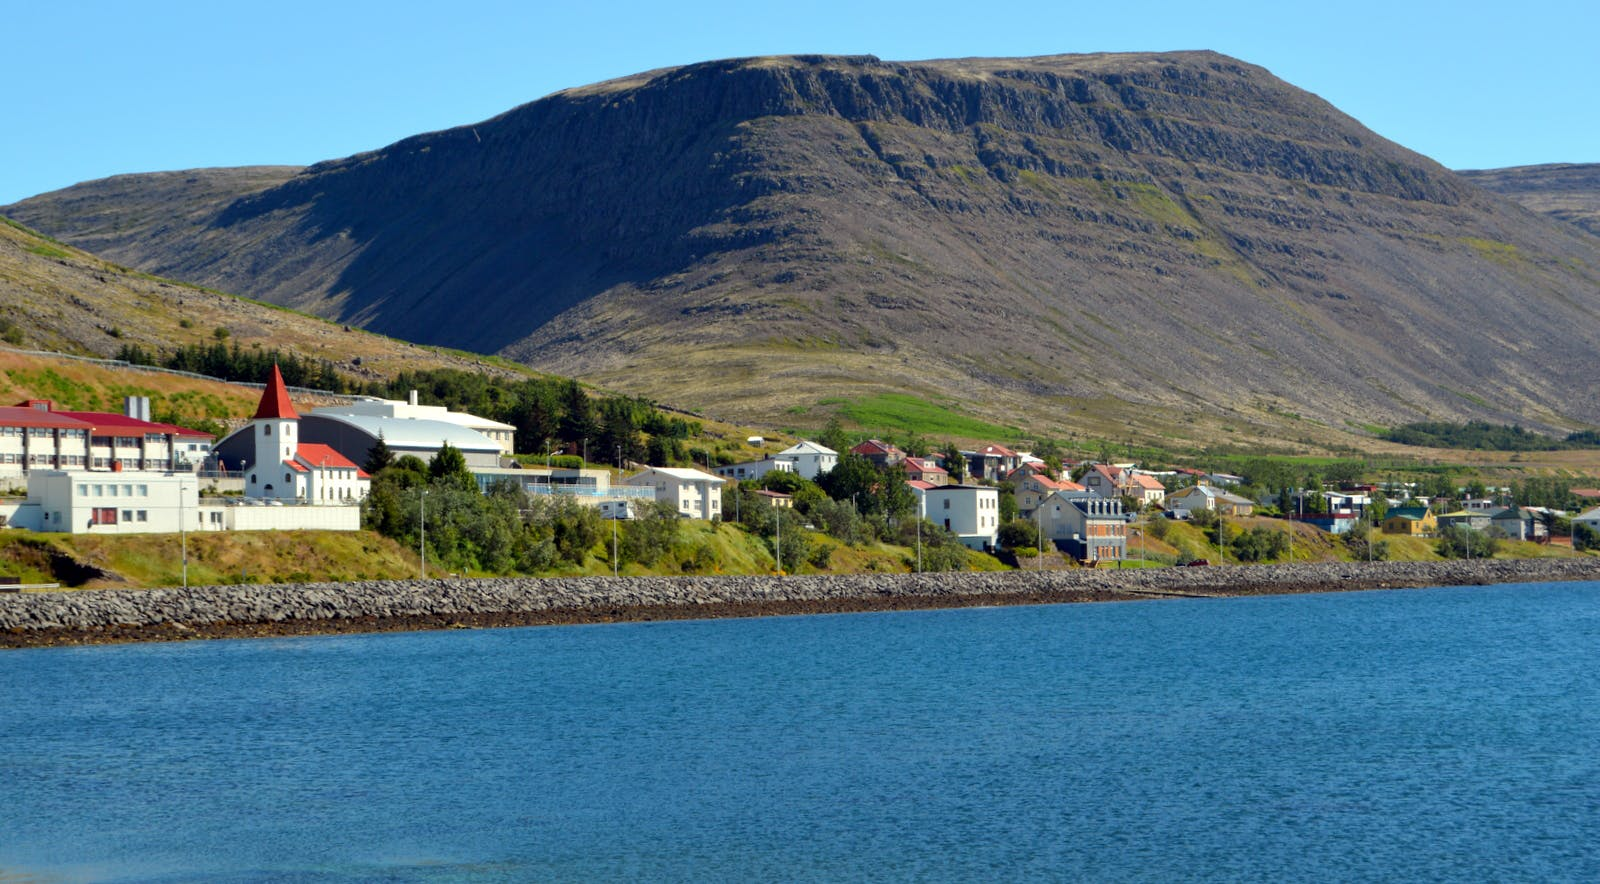 An Interview with Jóhann Svavarsson, the Owner of Hotel West in Patreksfjörður in the Westfjords of Iceland